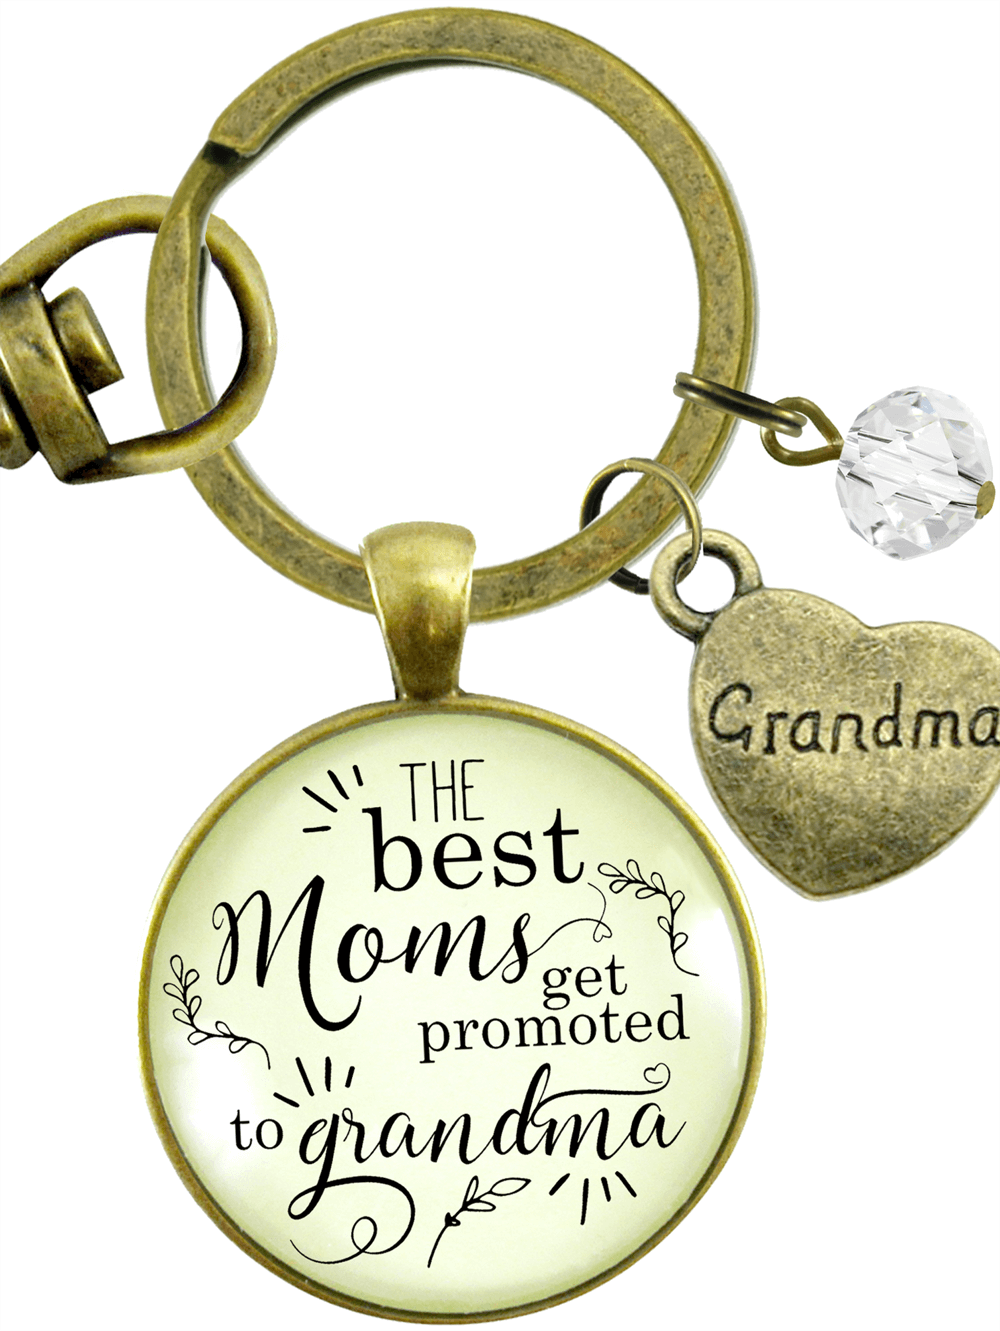 Grandma Necklace Keychain The Best Moms Get Promoted Grandmother Jewelry Meaningful Gift Personalized Birthstone Heart Charm Keepsake Card